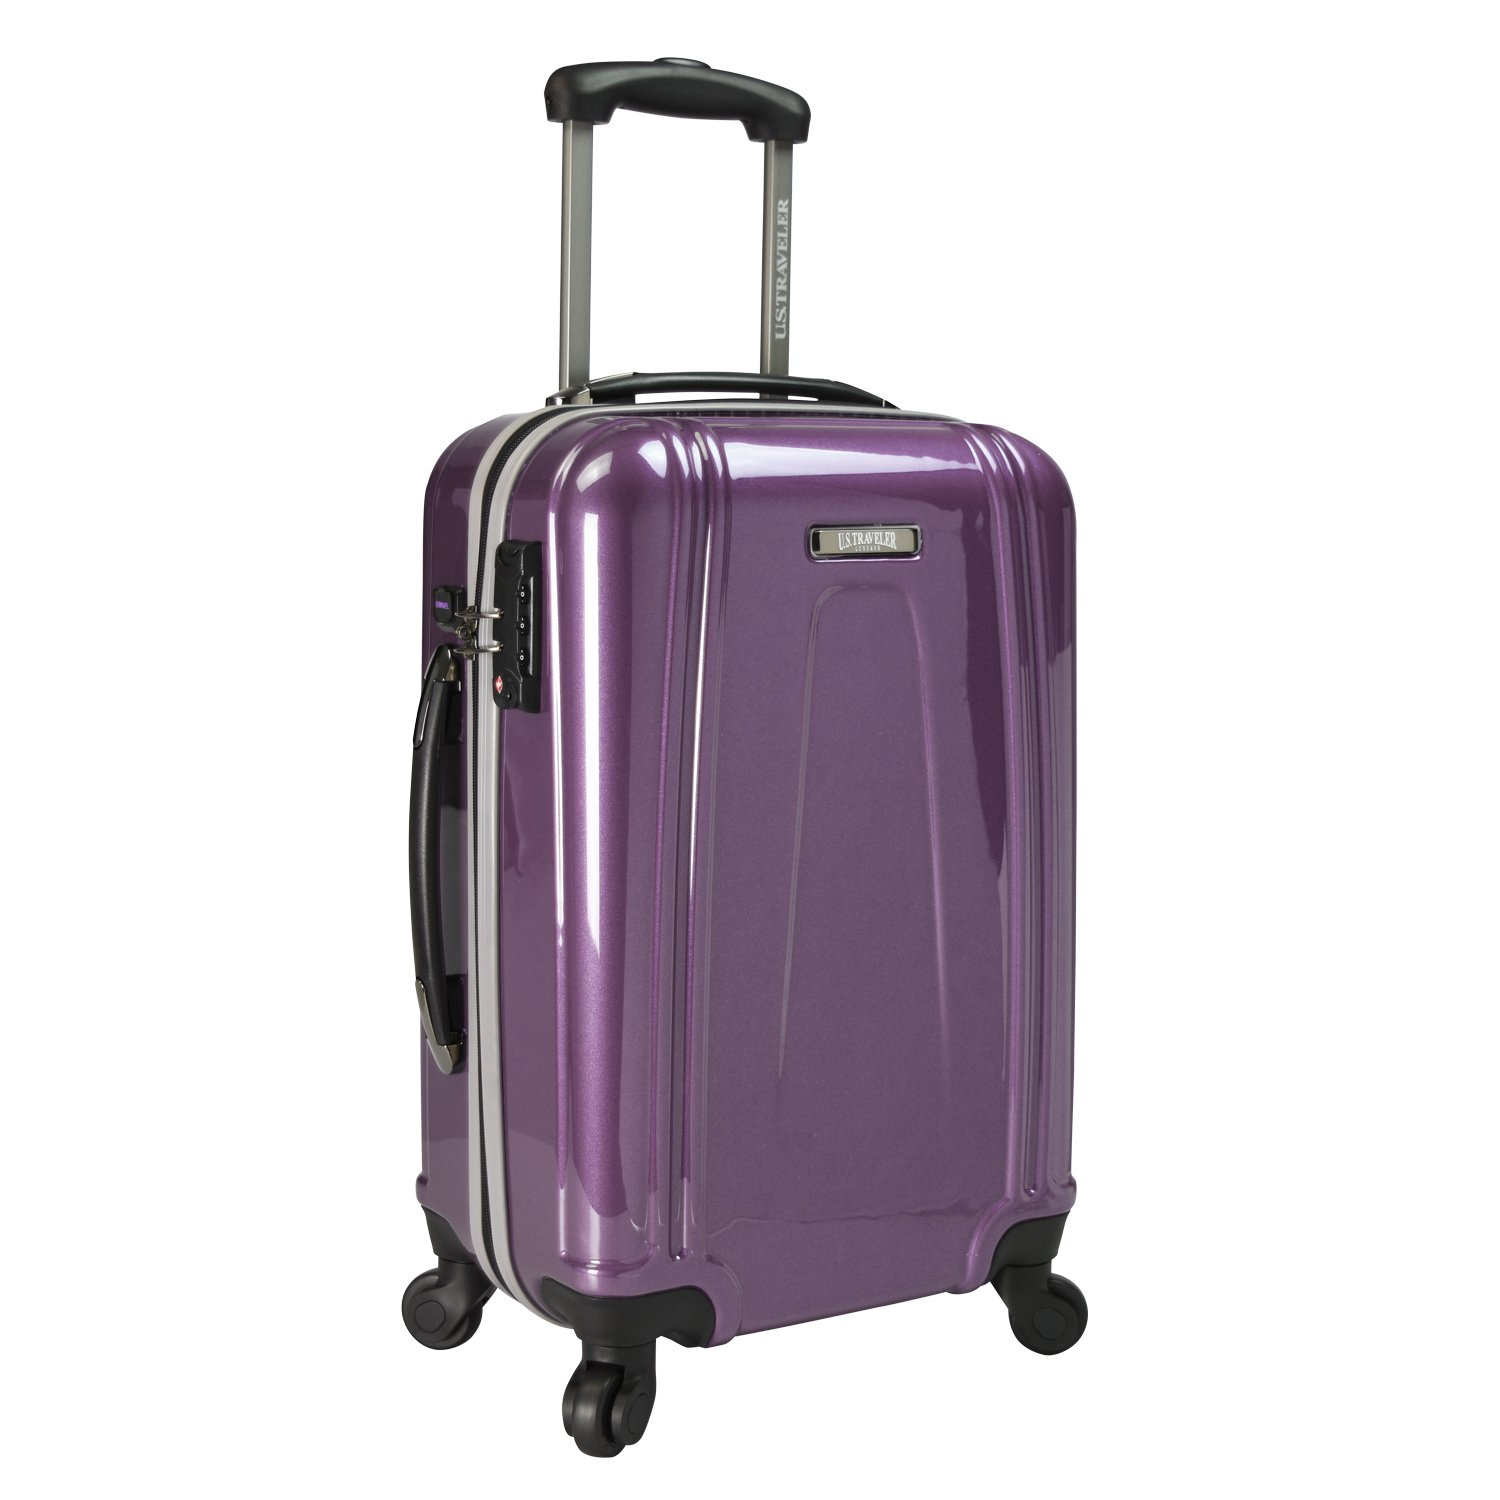 U.S. Traveler 22 Inch USB Port Ez-Charge Carry-on Spinner Suitcase, Navy, One Size TRB3I US09037N22